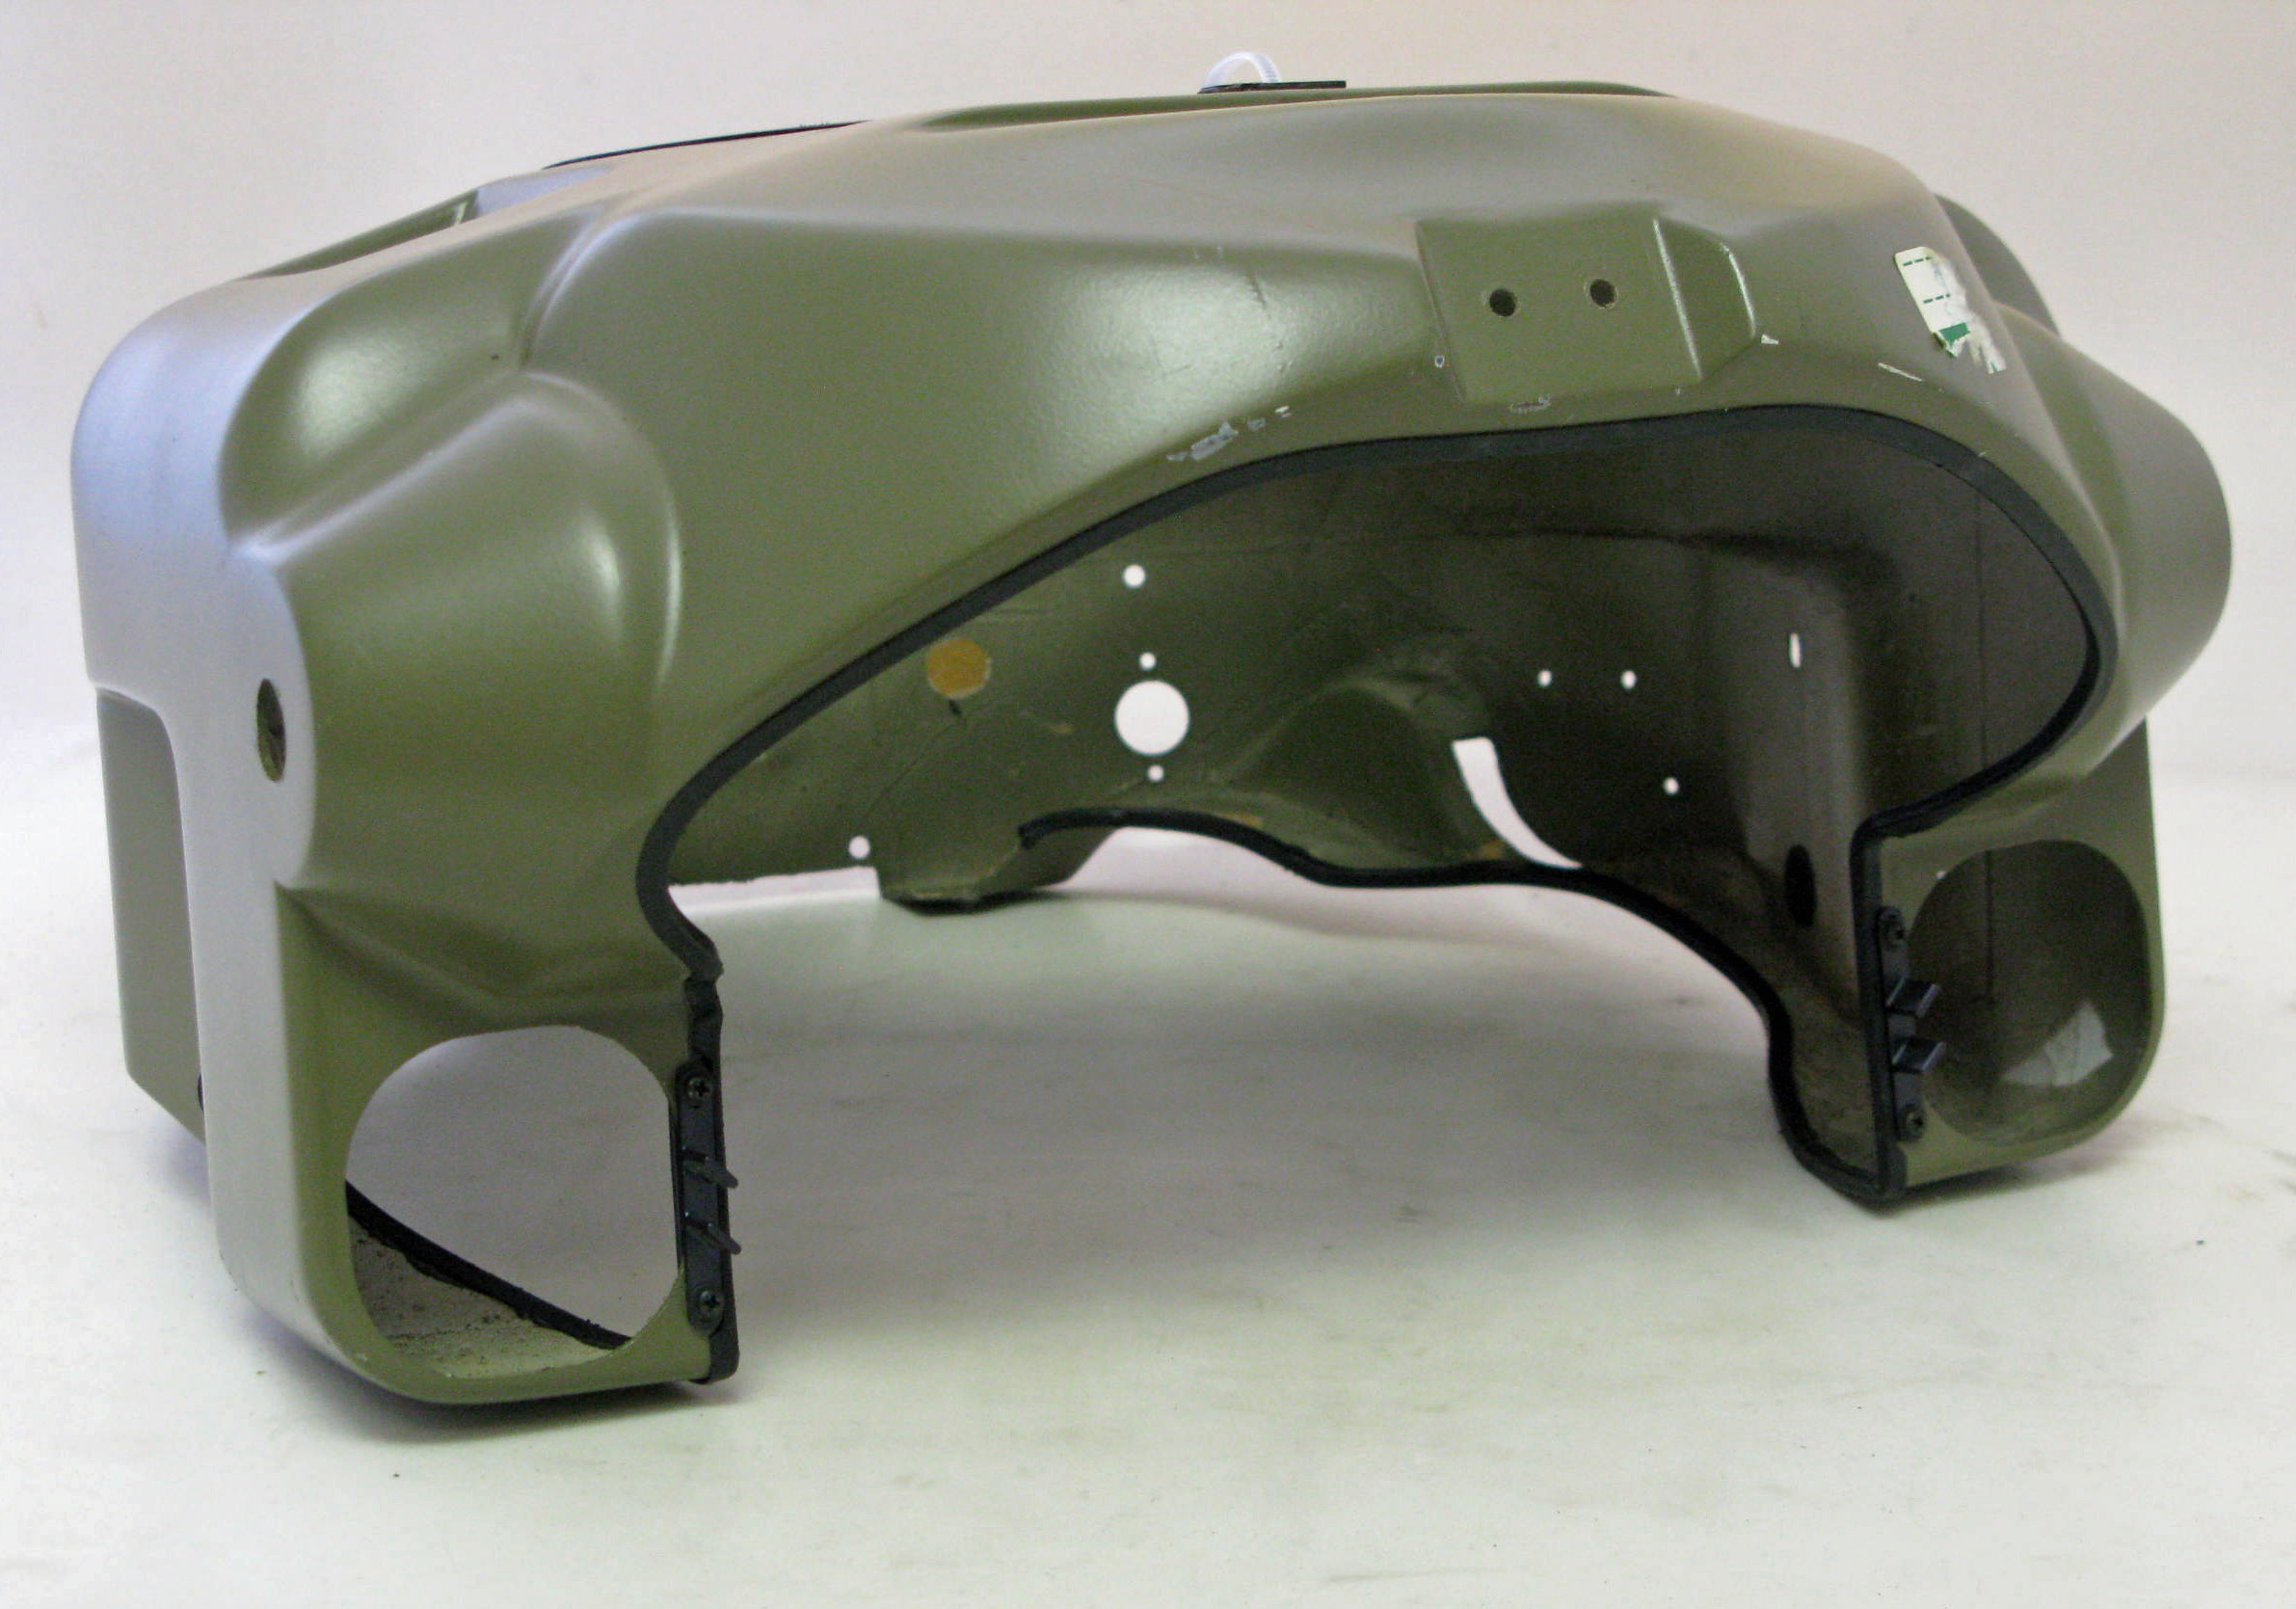 Outer Shell of Tiger Helmet Mounted Display